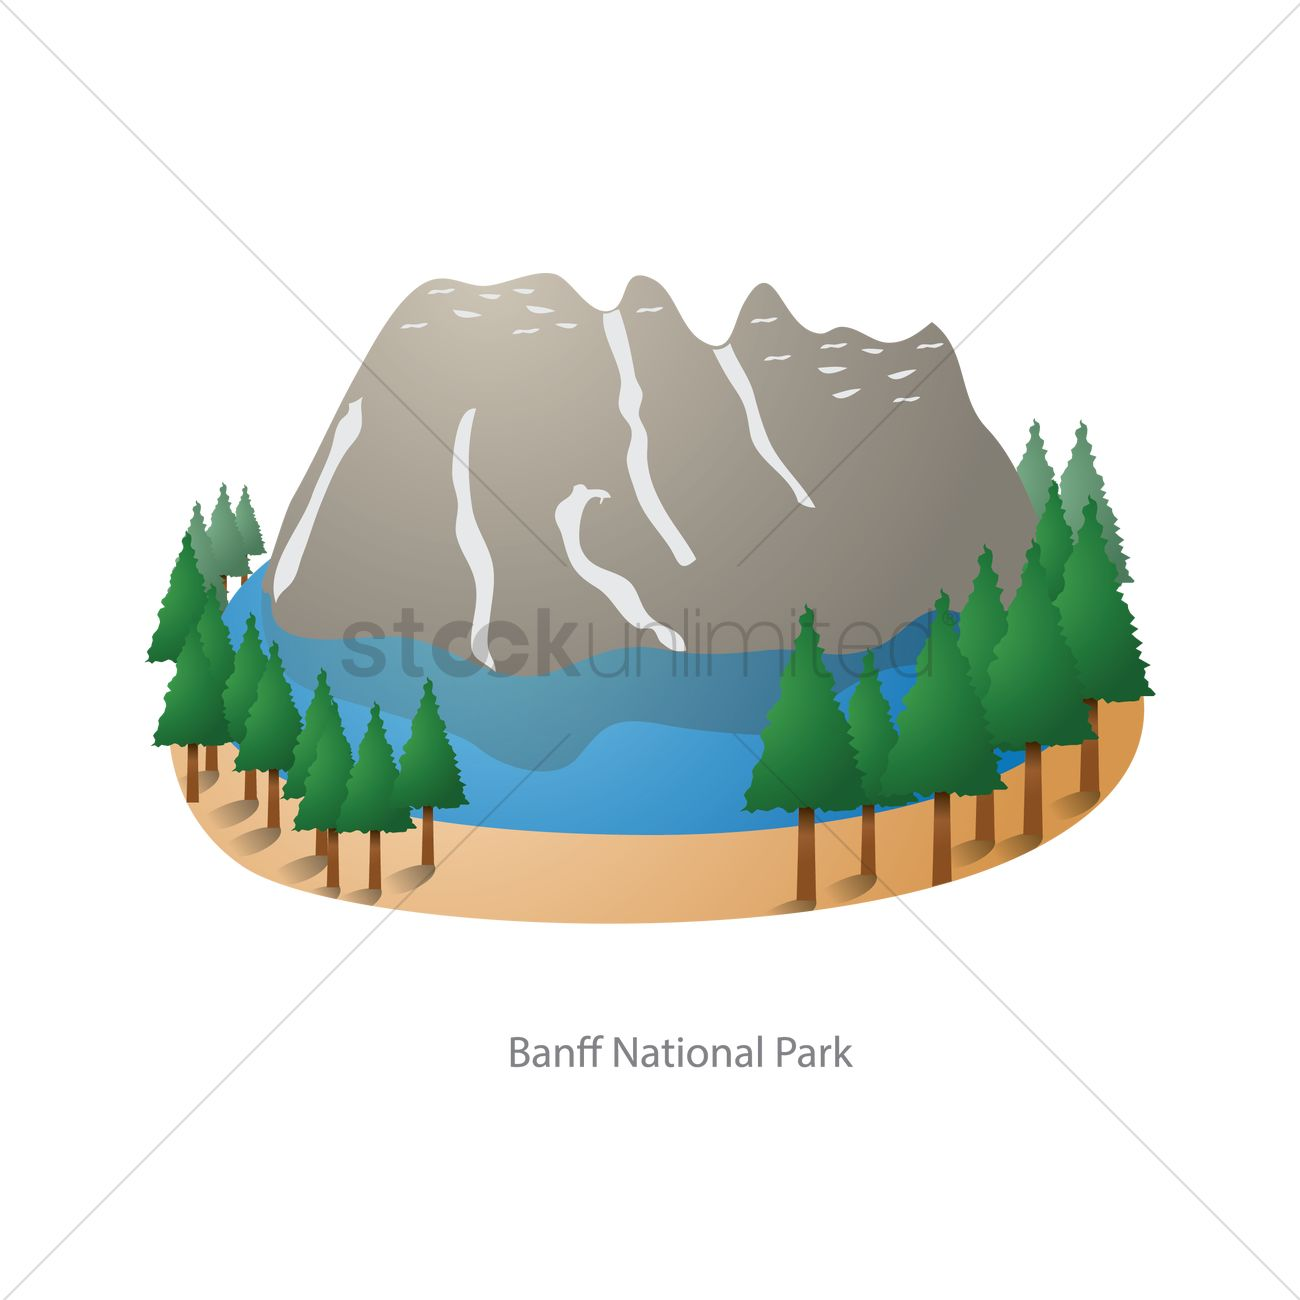 Banff National Park clipart #16, Download drawings